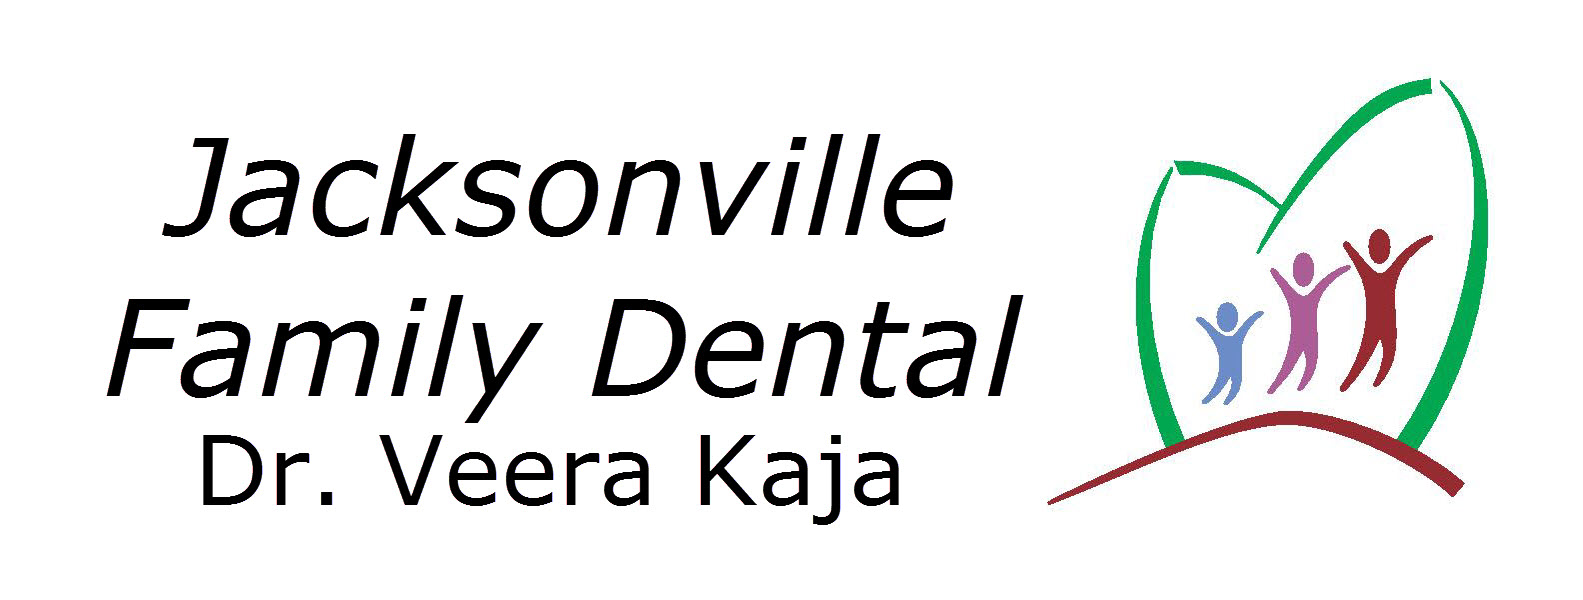 Jacksonville Family Dental